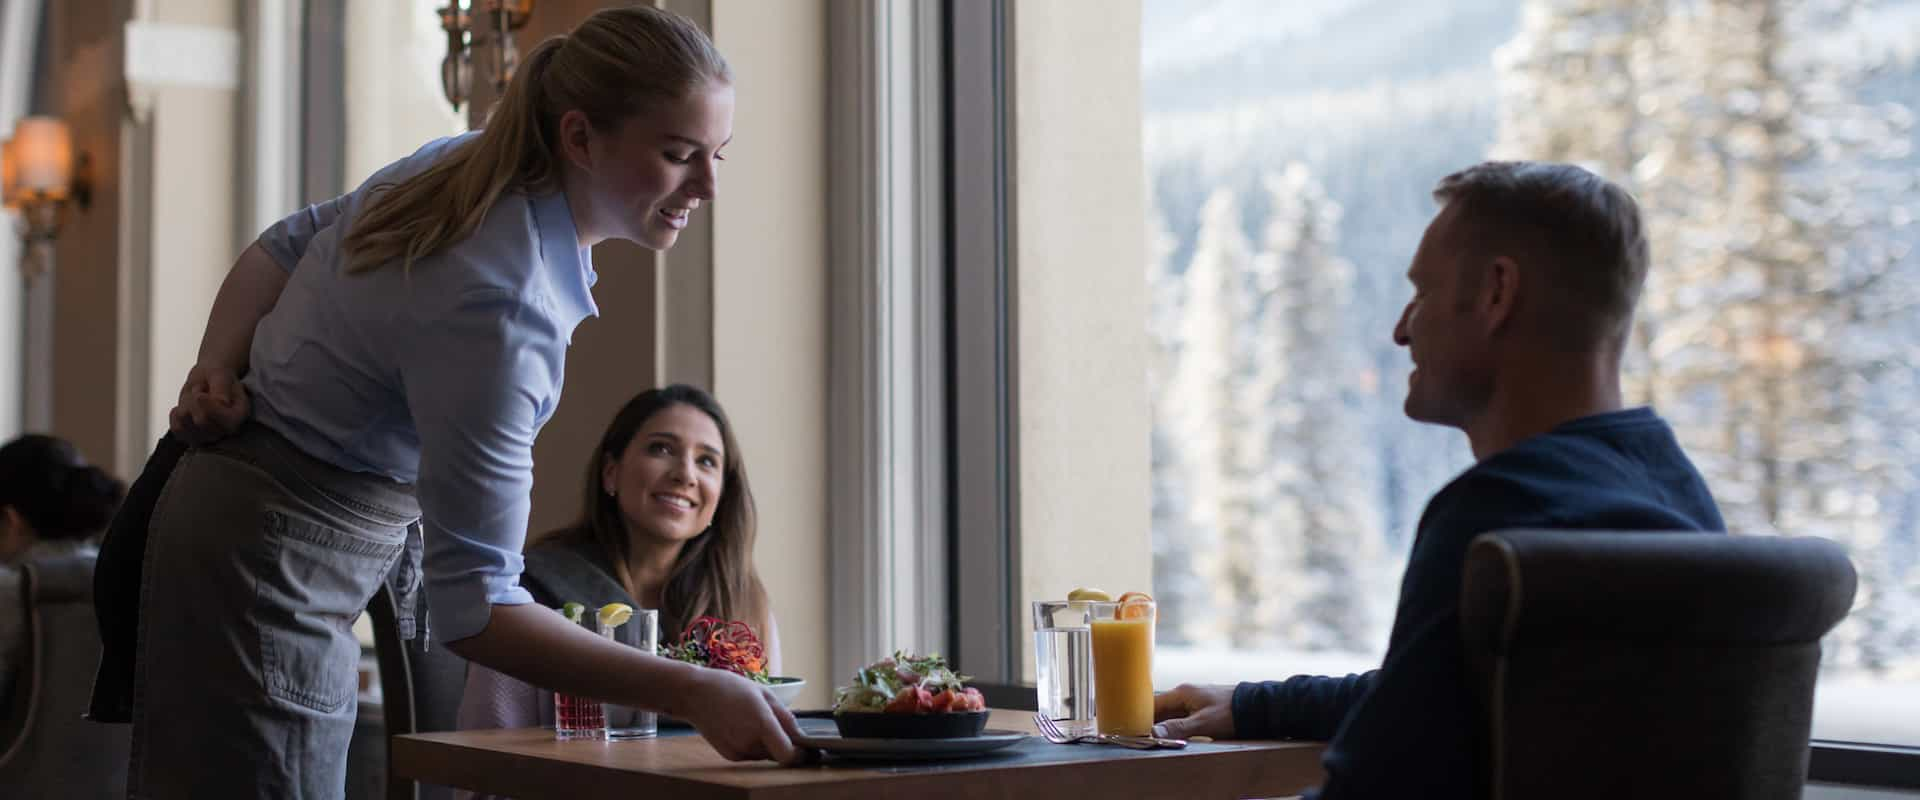 Dine at the Fairmont Chateau Lake Louise